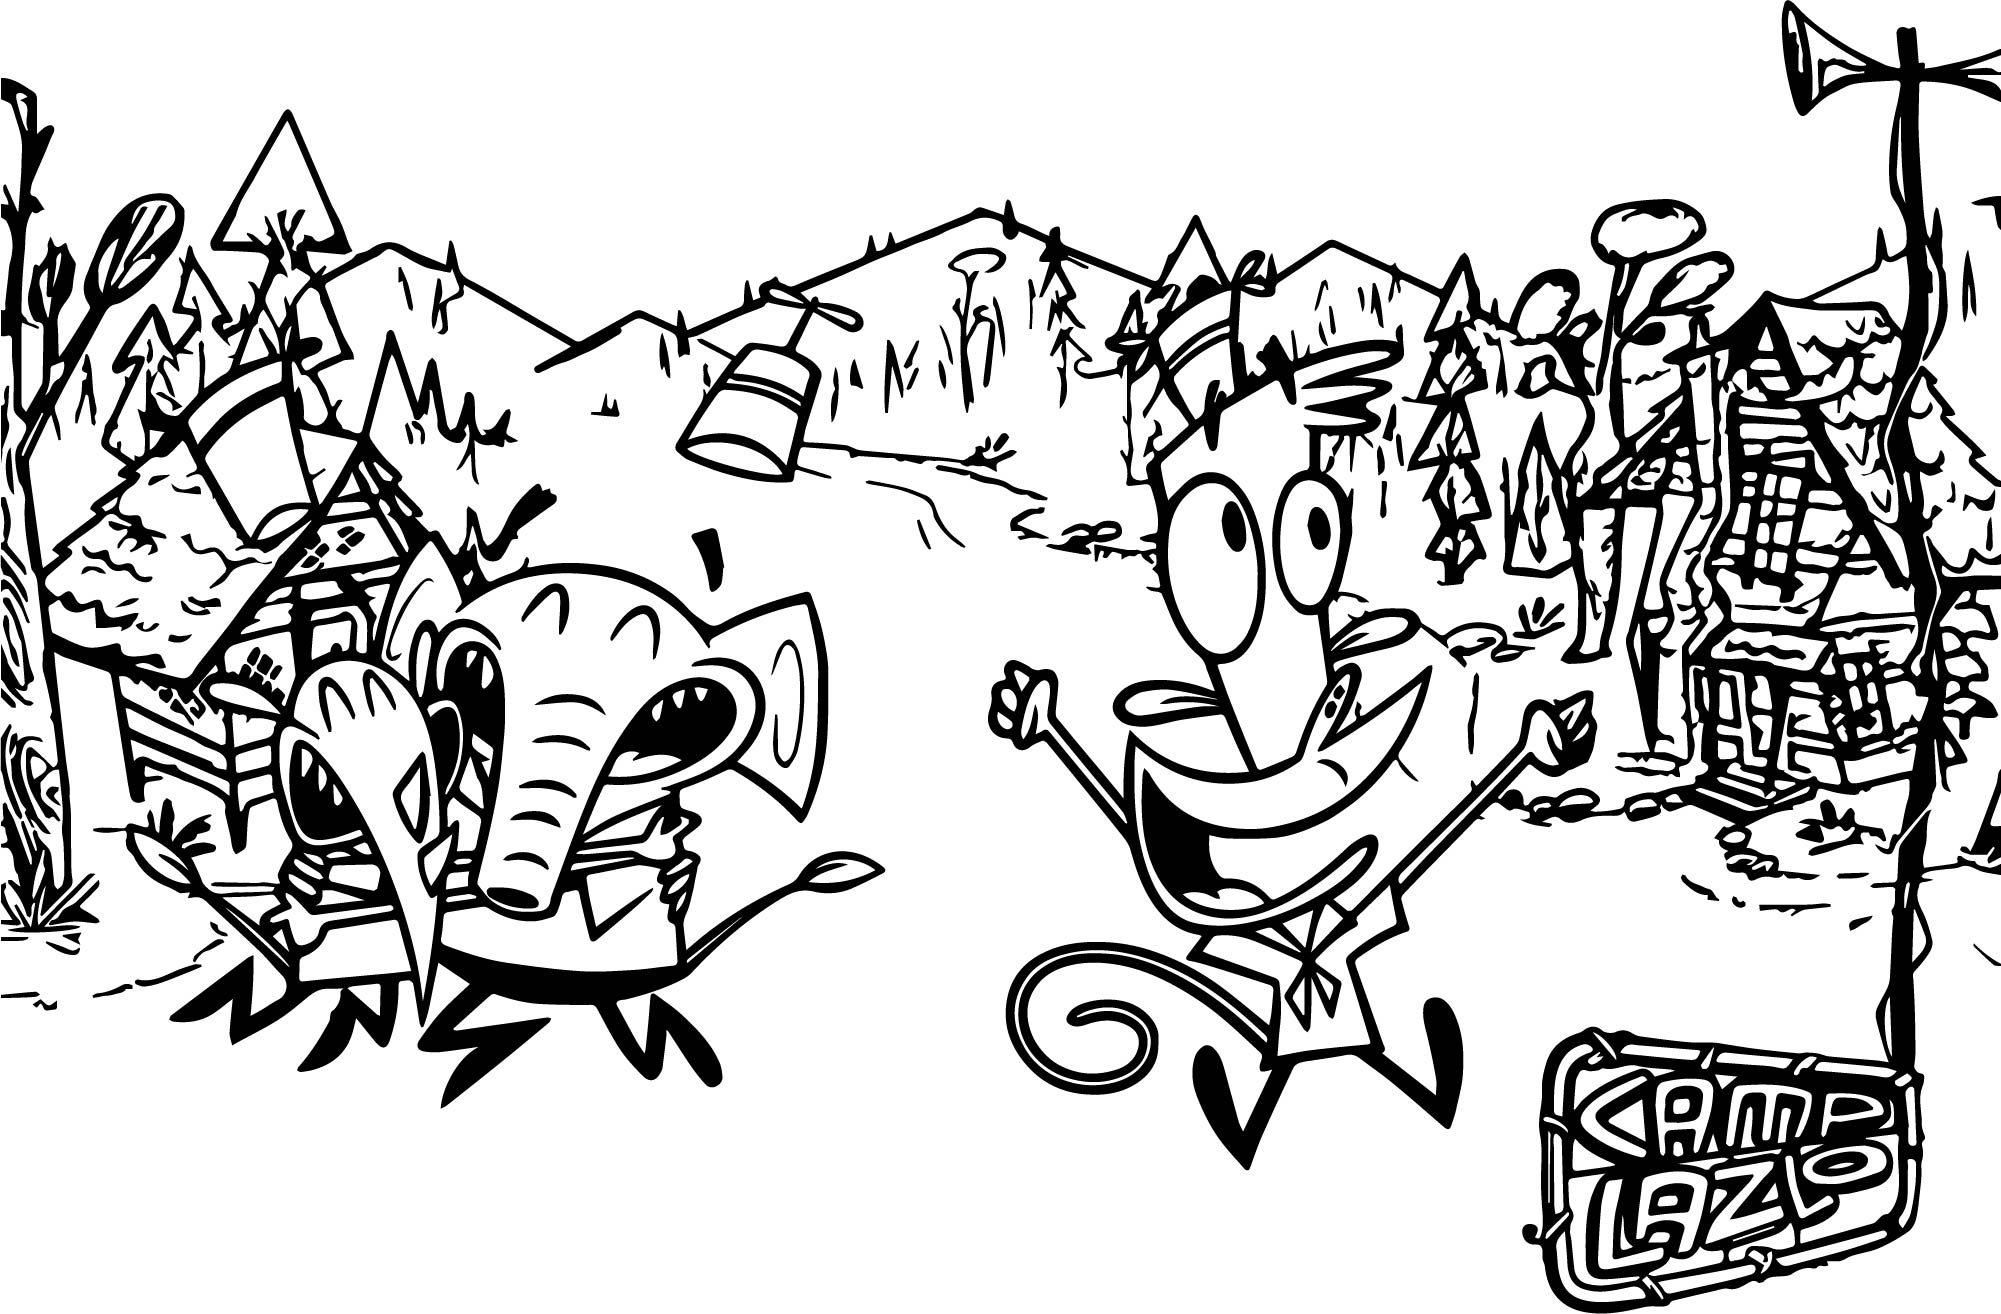 camp lazlo coloring page wecoloringpage